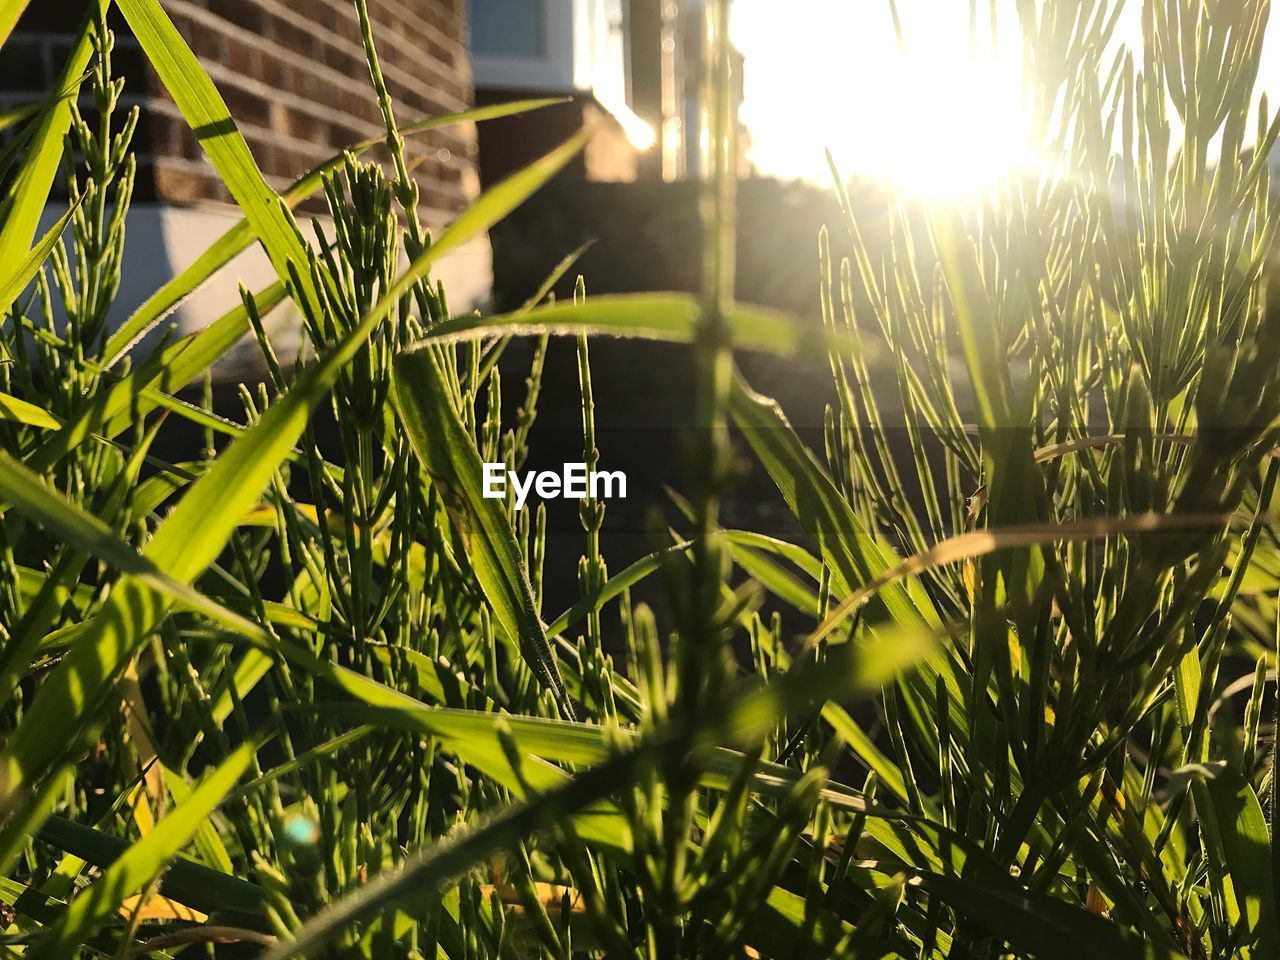 plant, growth, grass, sunlight, nature, green color, selective focus, day, beauty in nature, field, no people, blade of grass, outdoors, land, close-up, lens flare, built structure, leaf, sunbeam, plant part, brightly lit